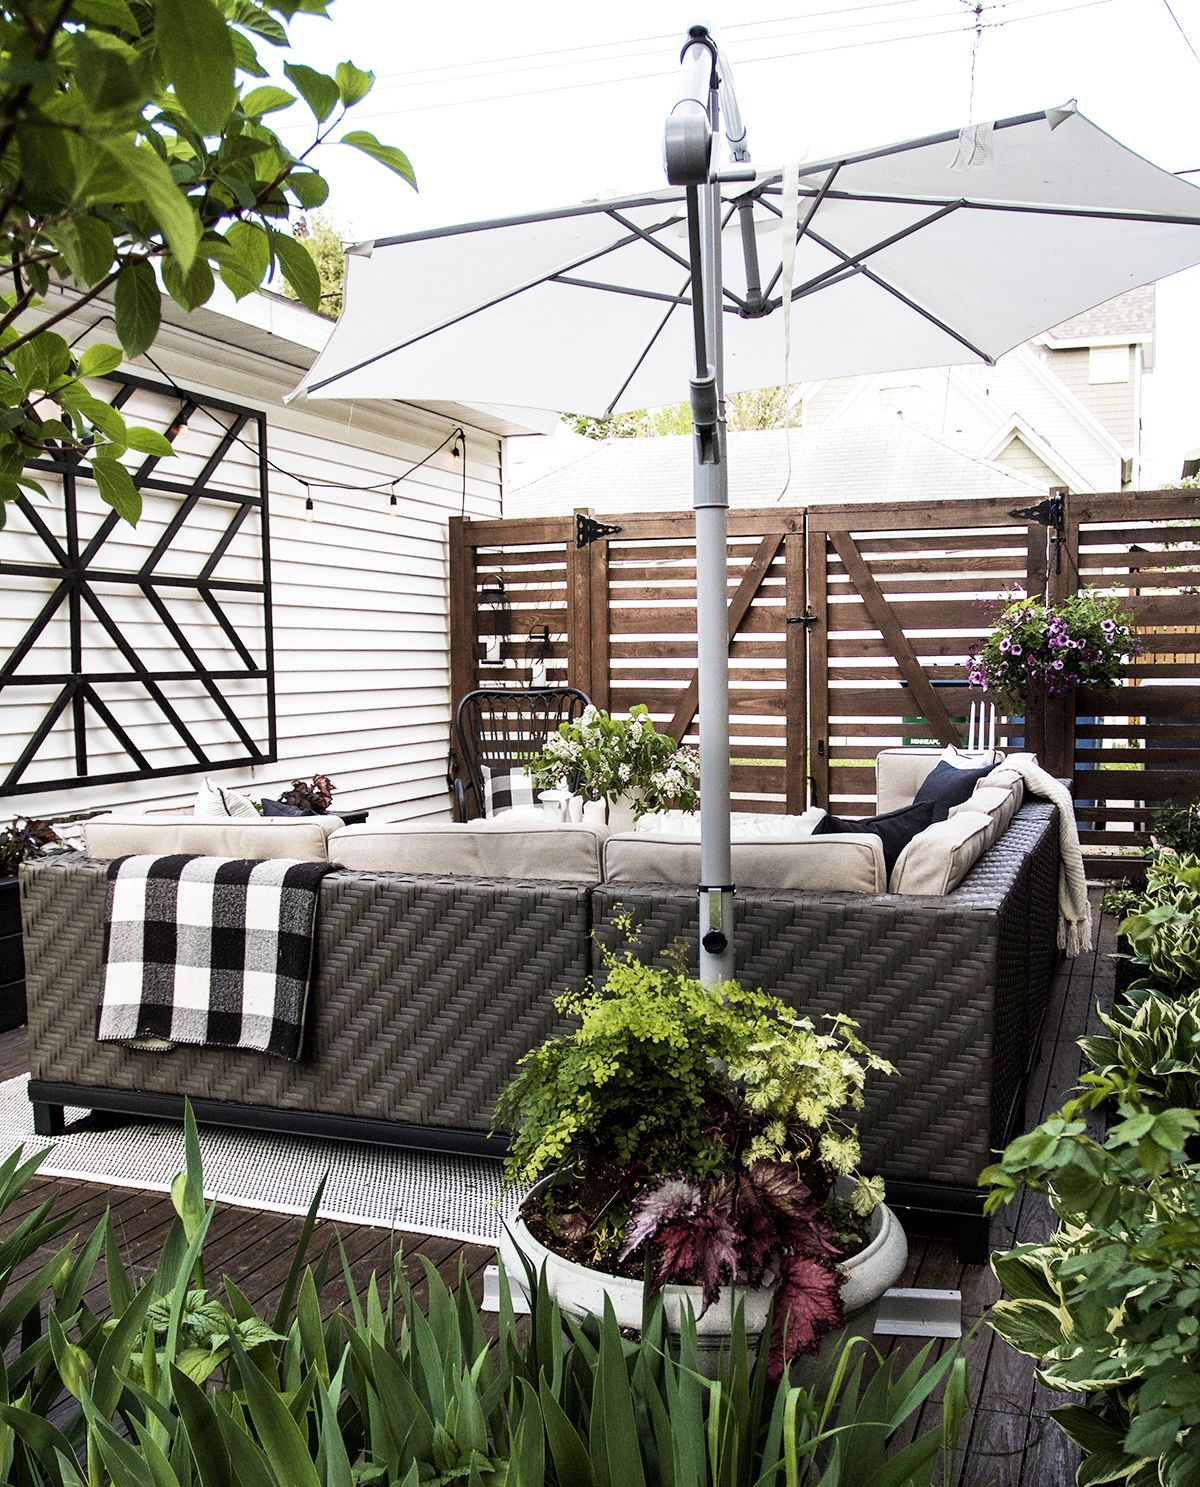 39 Best Fencing Design Ideas For Inspiration To Lok Out For Your Home Patio Fence Design Outdoor Rooms